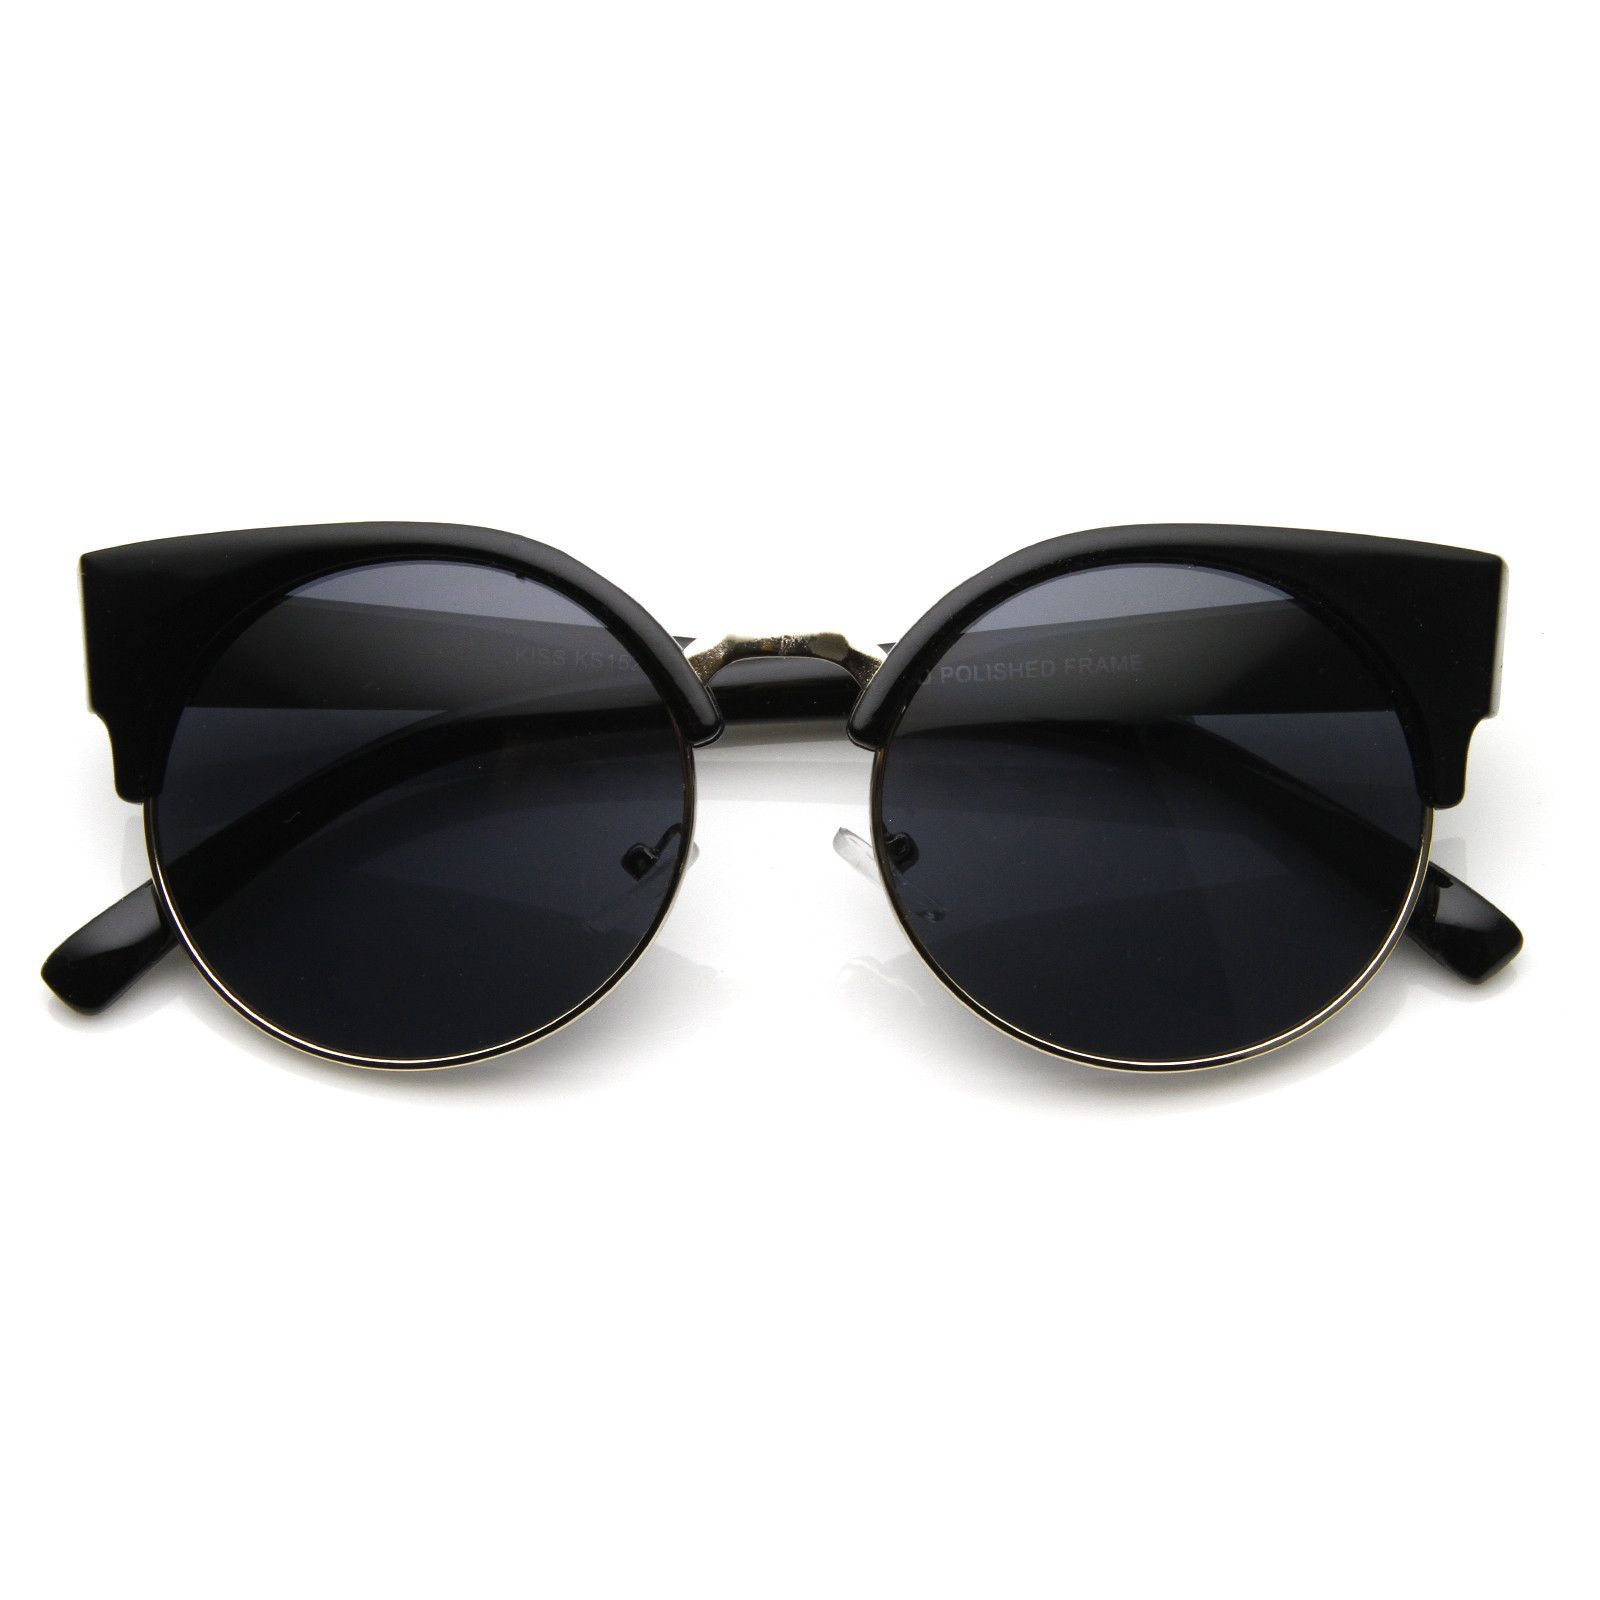 i dont know if i would look good in these but theyre cute vintage inspired round circle cat eye sunglasses 8785 from zerouv cheap ray ban